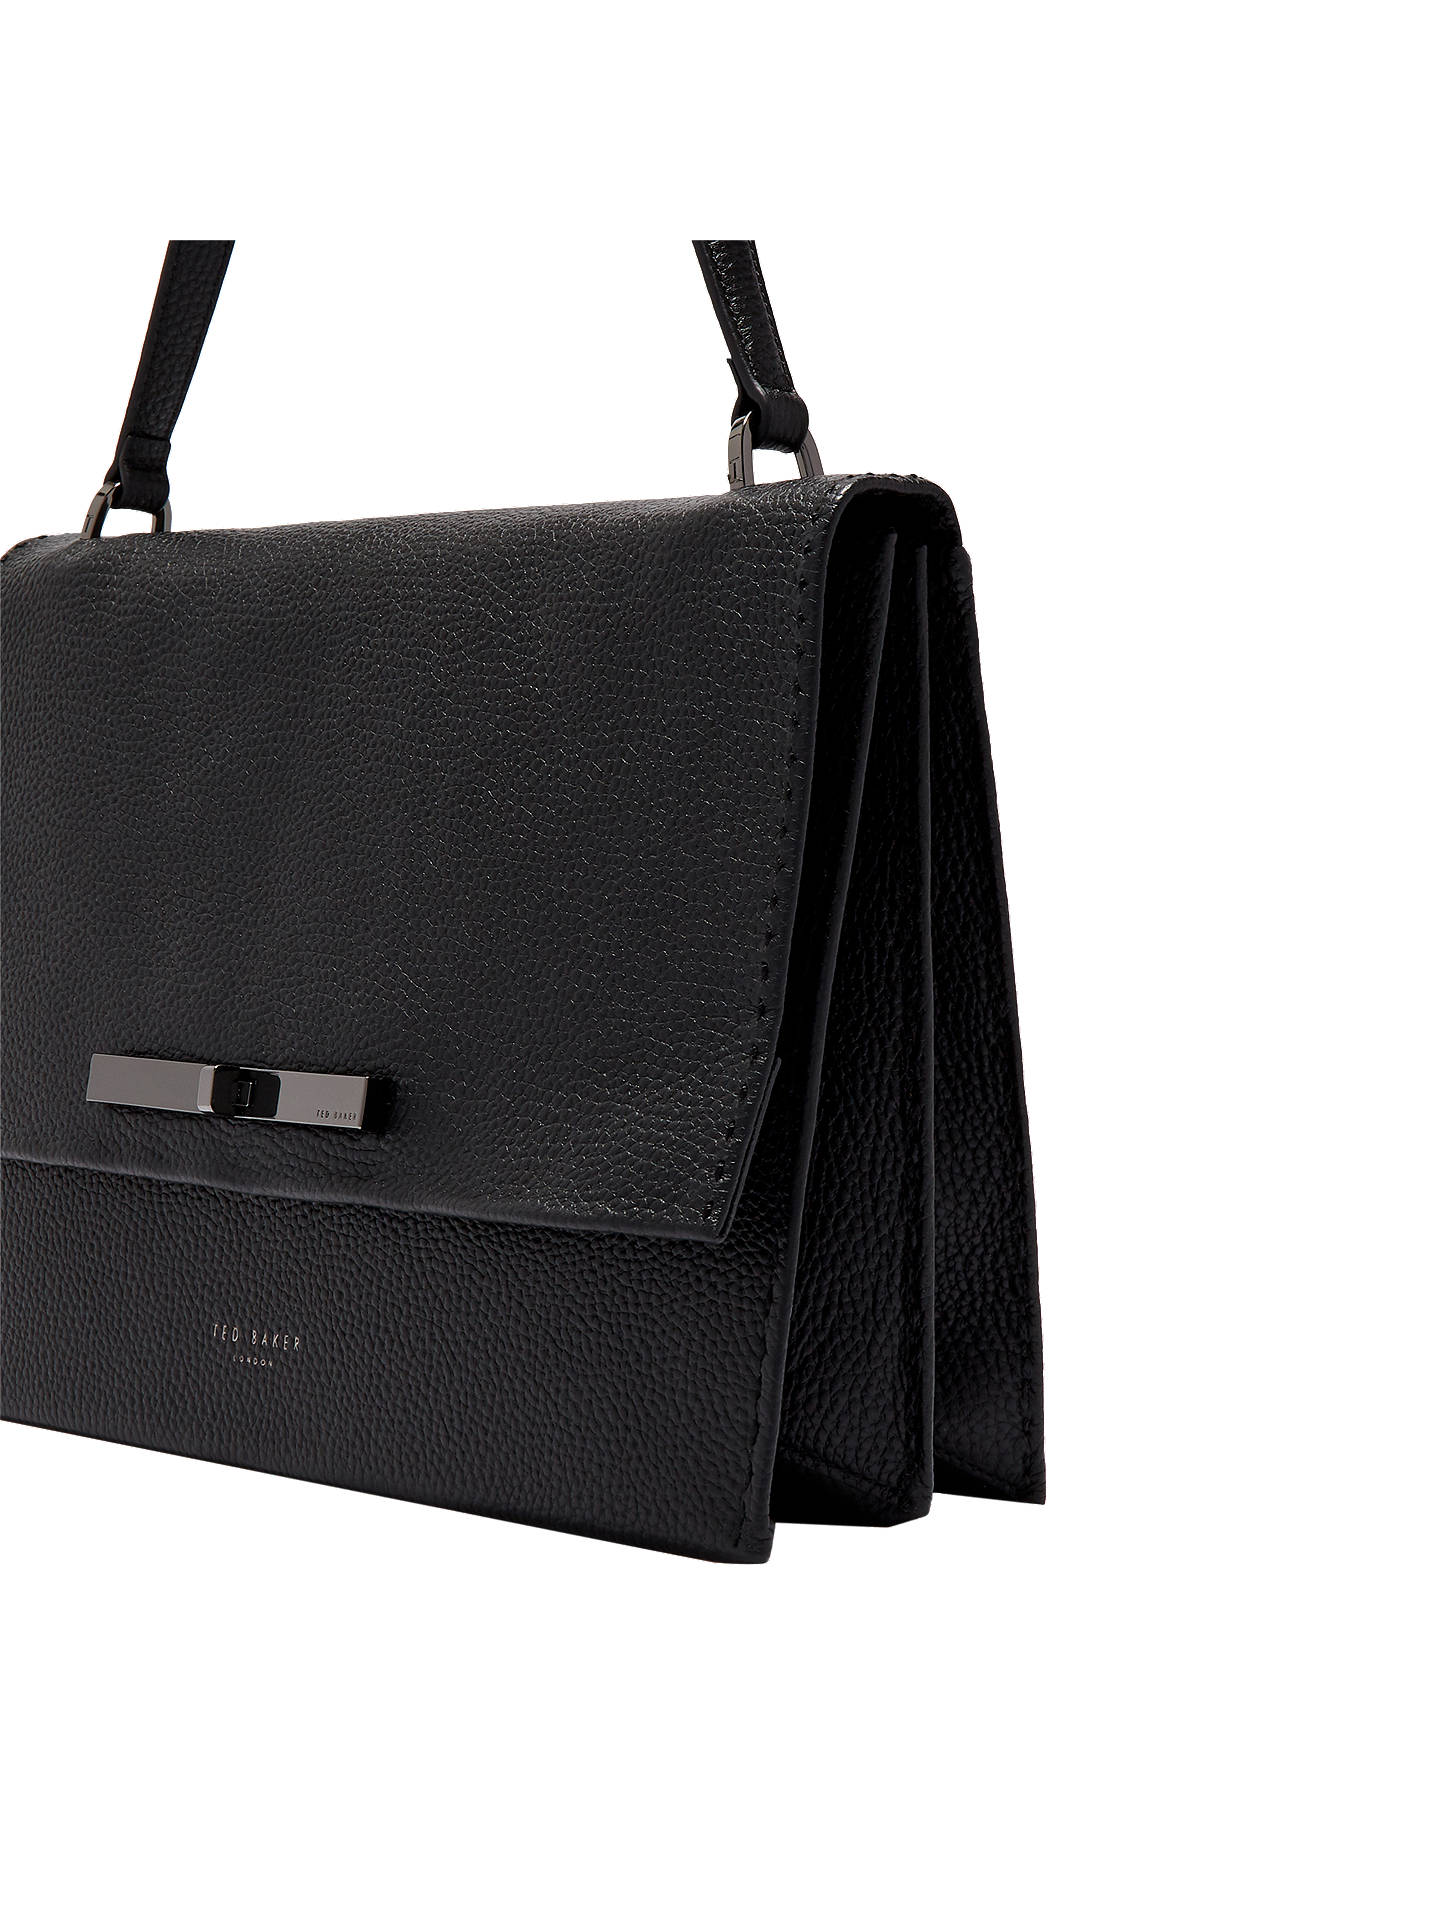 BuyTed Baker Jessi Leather Handbag, Black Online at johnlewis.com